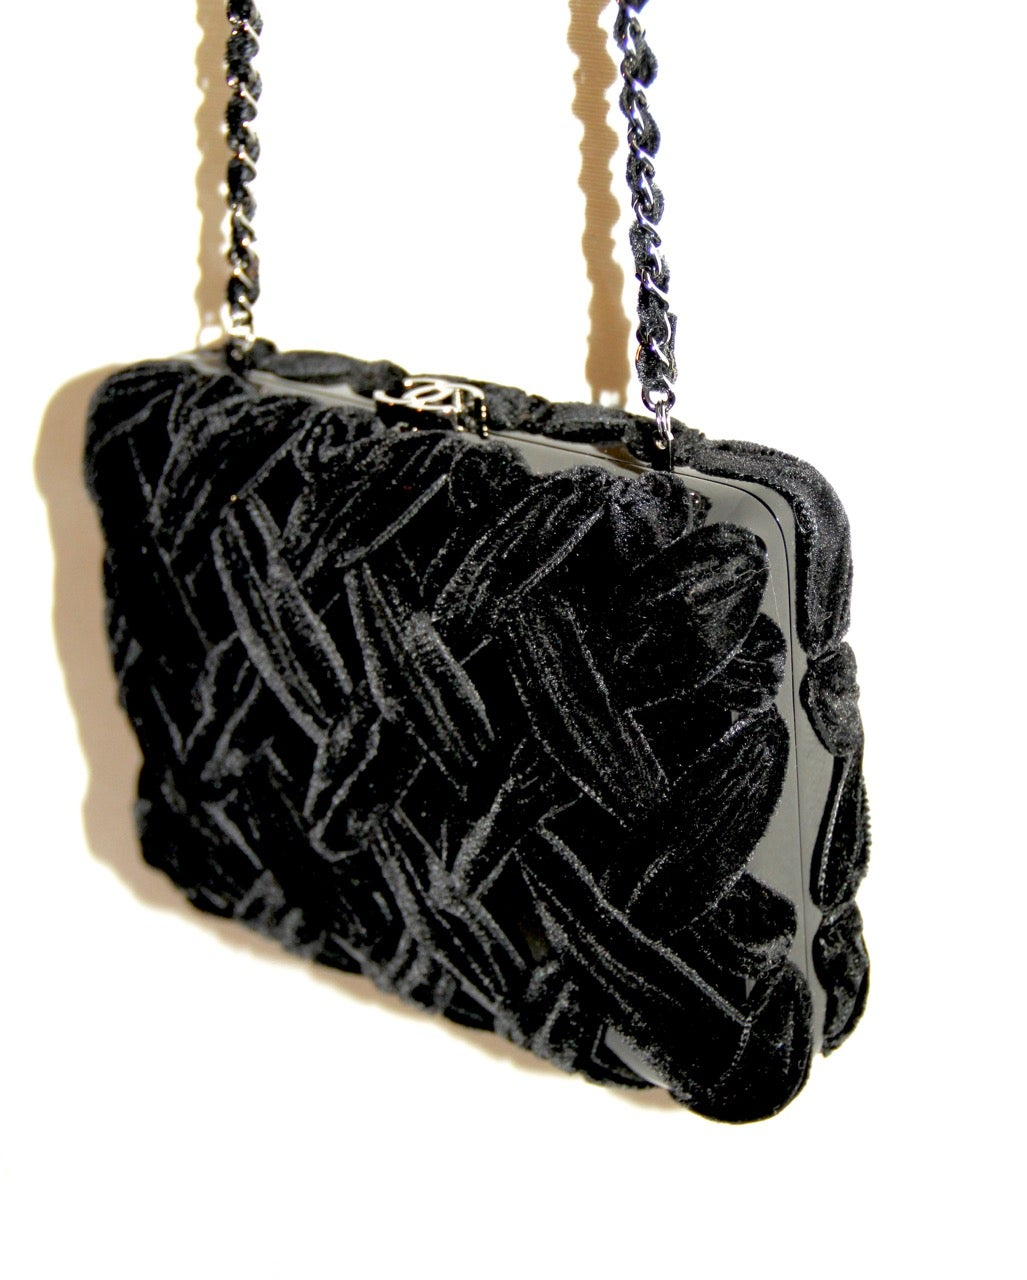 8aedfa2ef793 Chanel Black Evening Clutch - Velvet and Resin - CC Lock - Excellent  Condition at 1stdibs